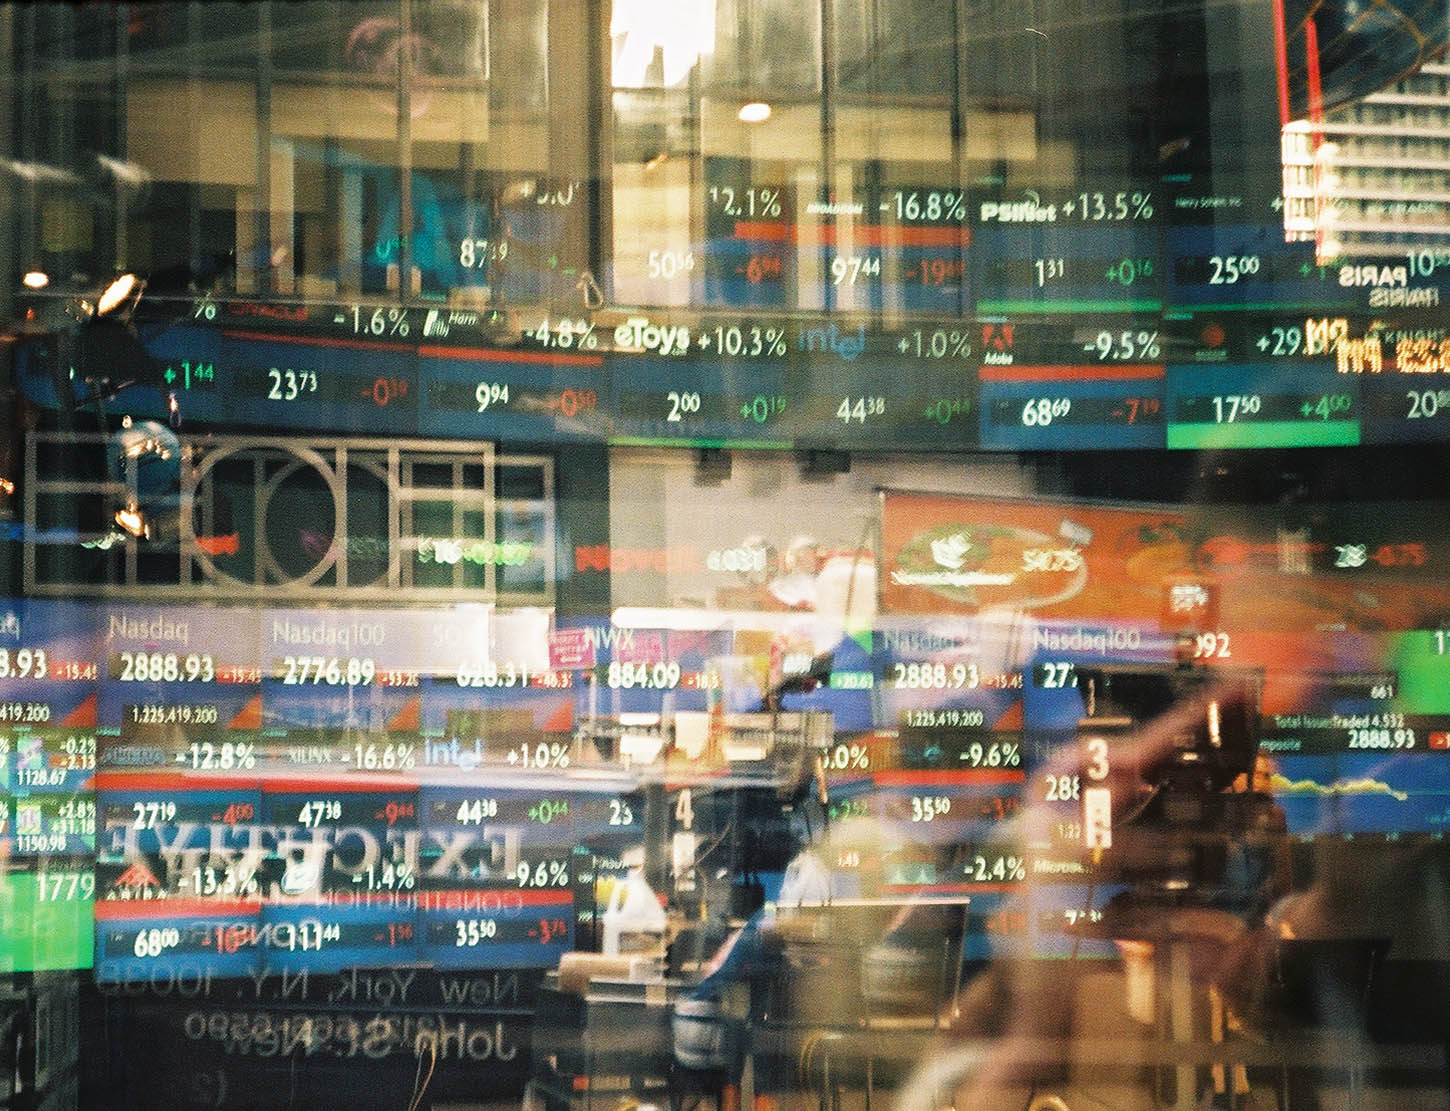 Reflection Of Financial Figures On Glass